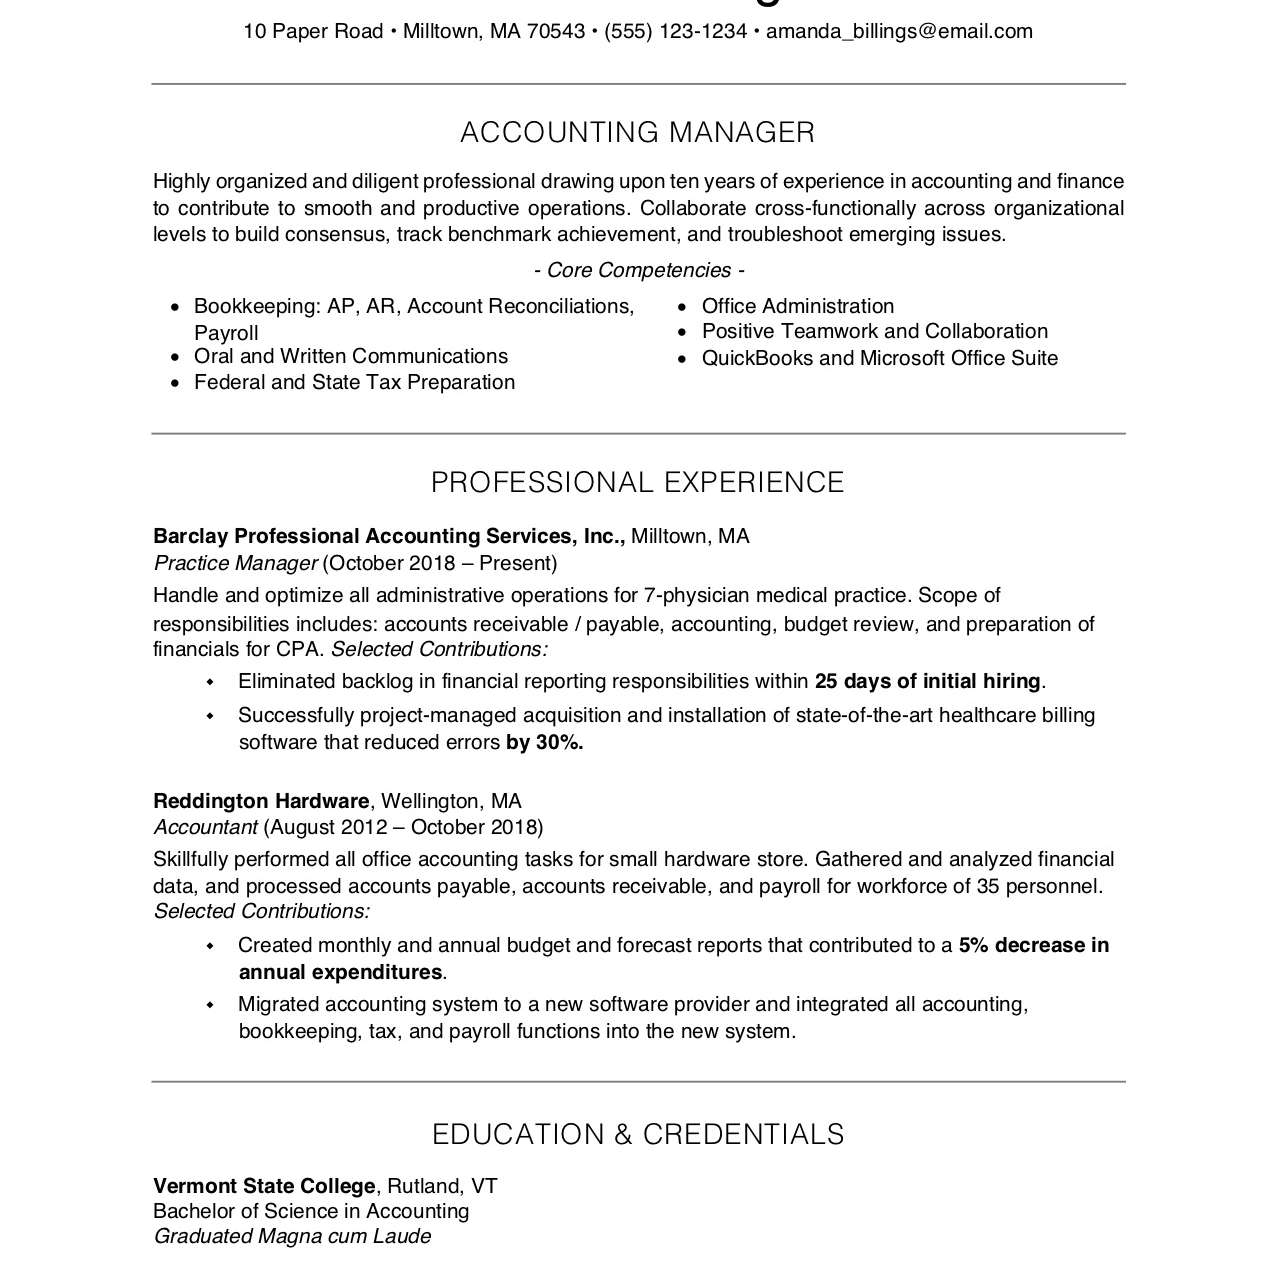 free professional resume examples and writing tips sample 2063596res1 team supervisor Resume Free Sample Resume Writing